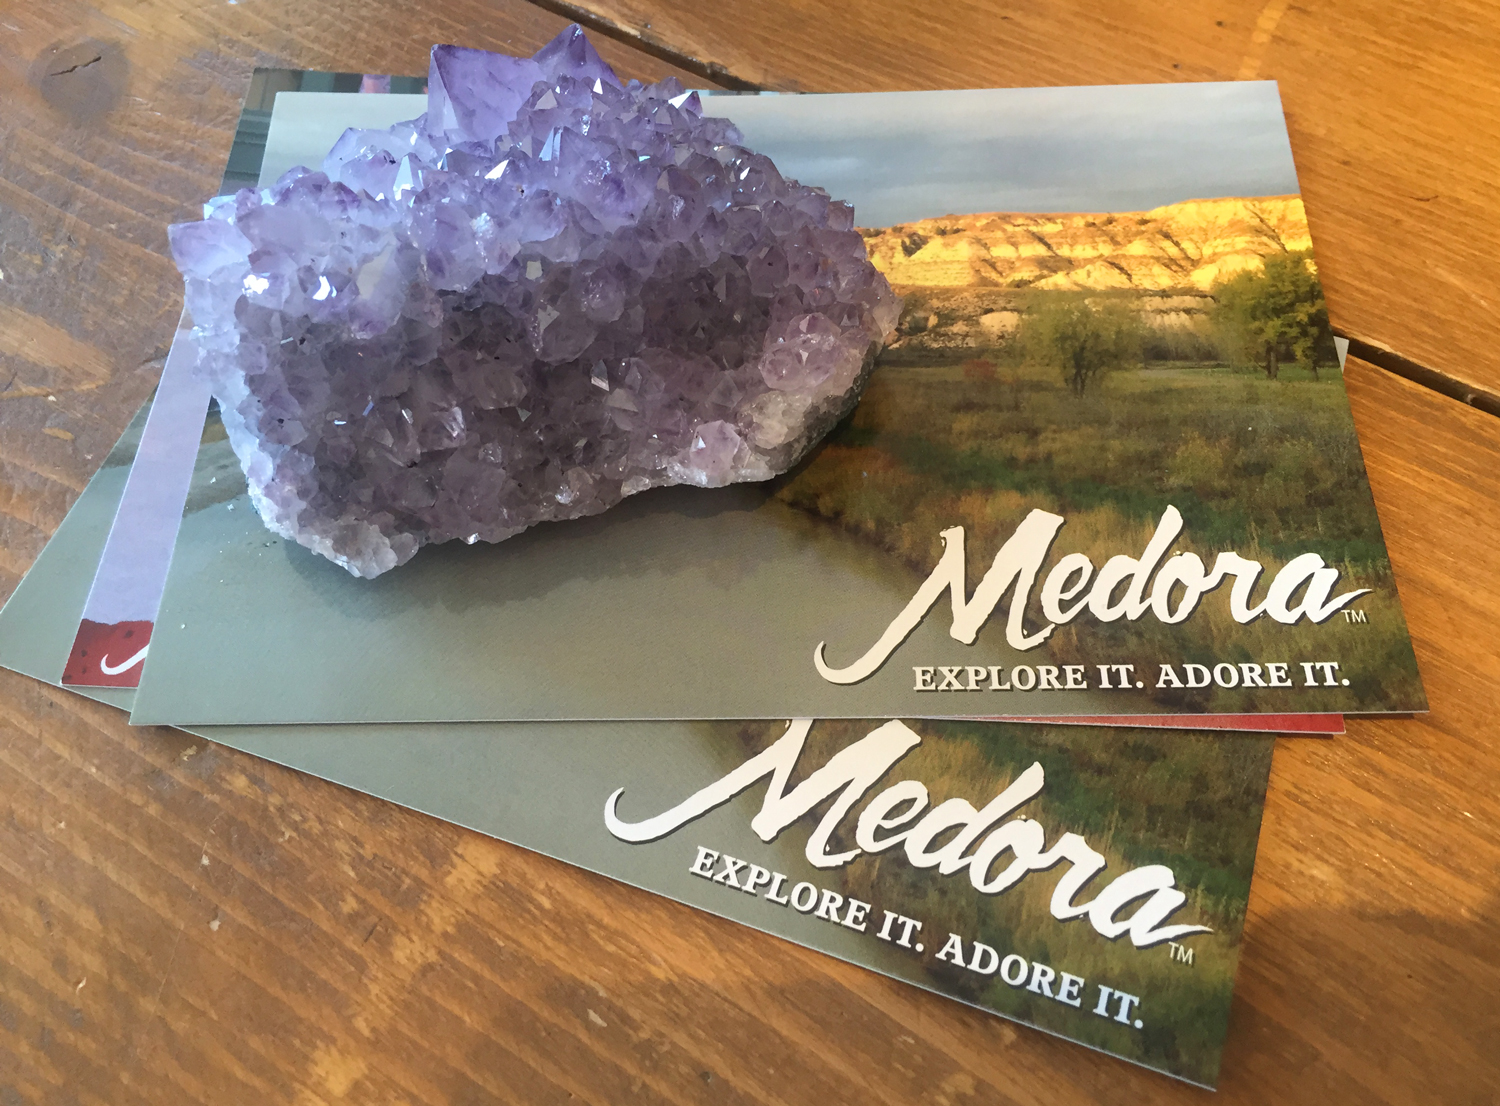 Medora_Postcards_By_Alicia_Underlee_Nelson